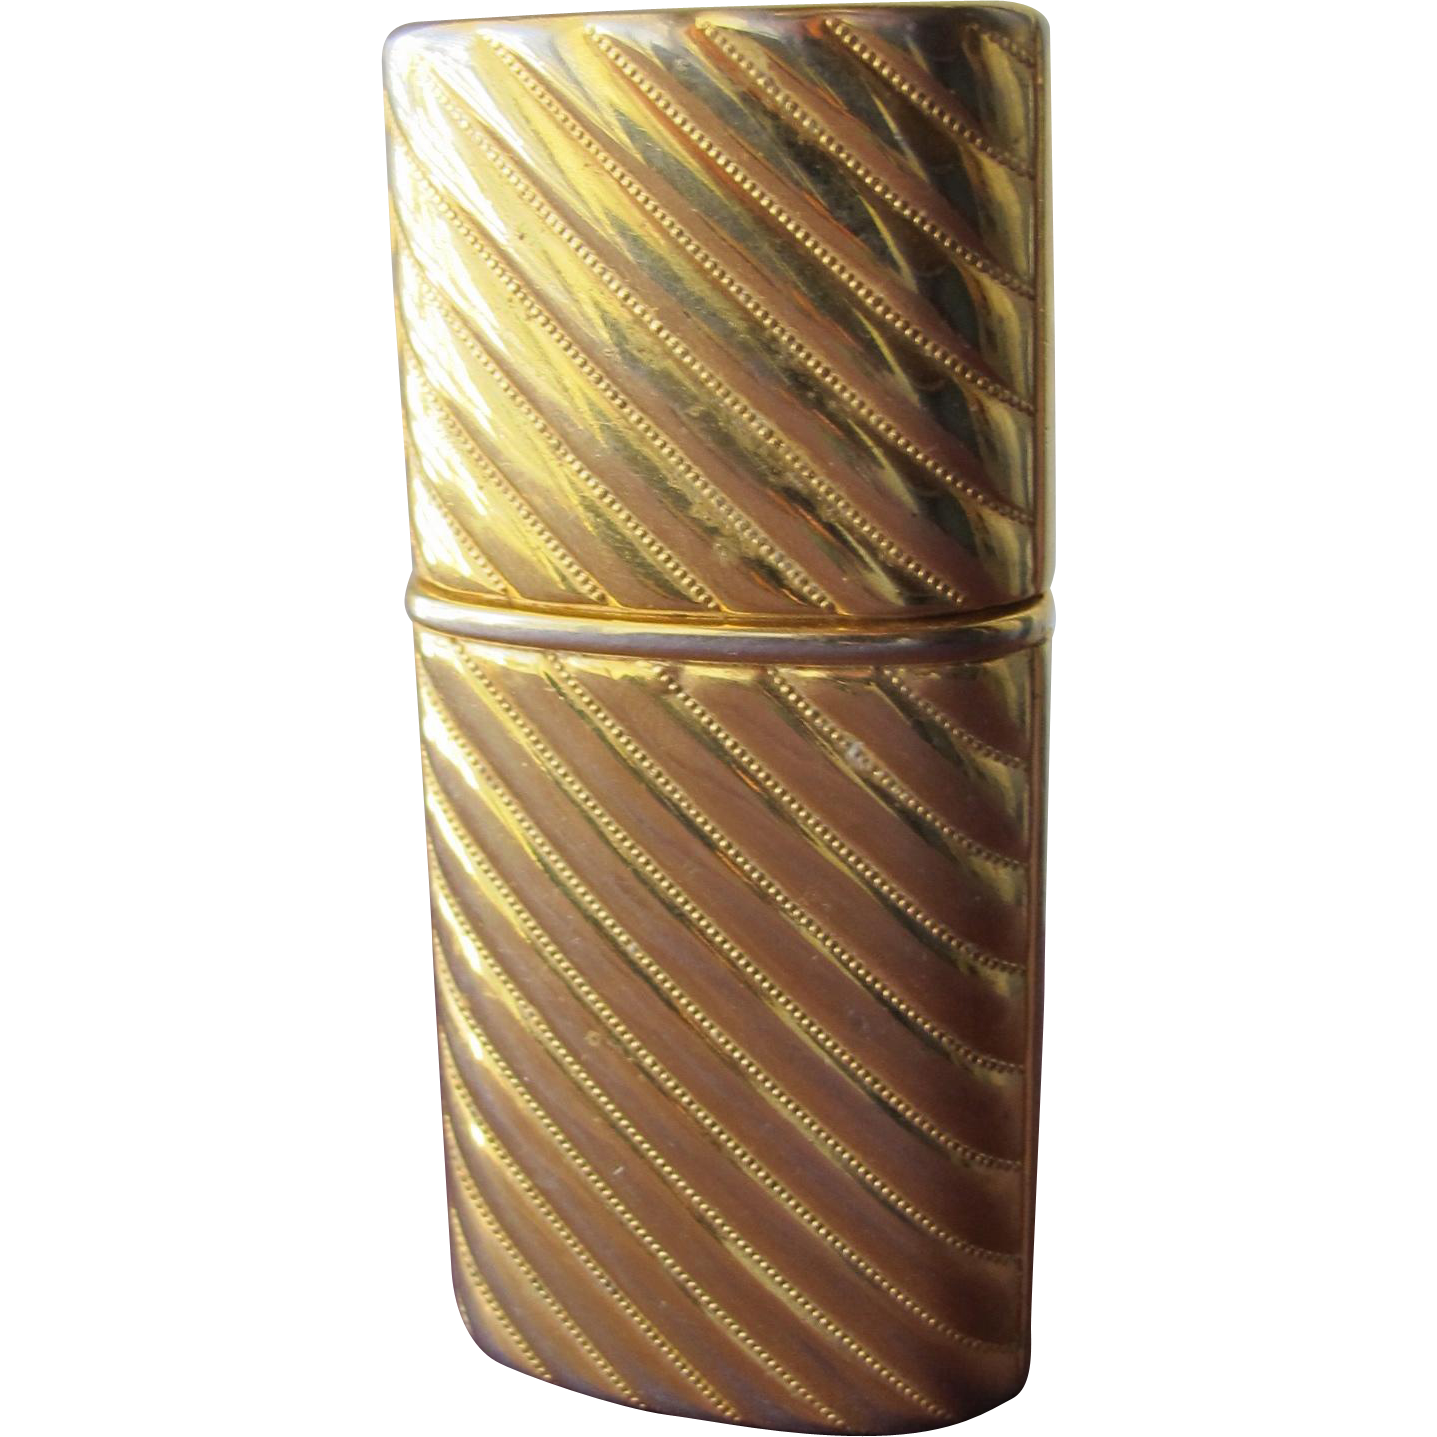 Estee Lauder Perfume Bottle 1985 Beautiful Metal Purse Perfume